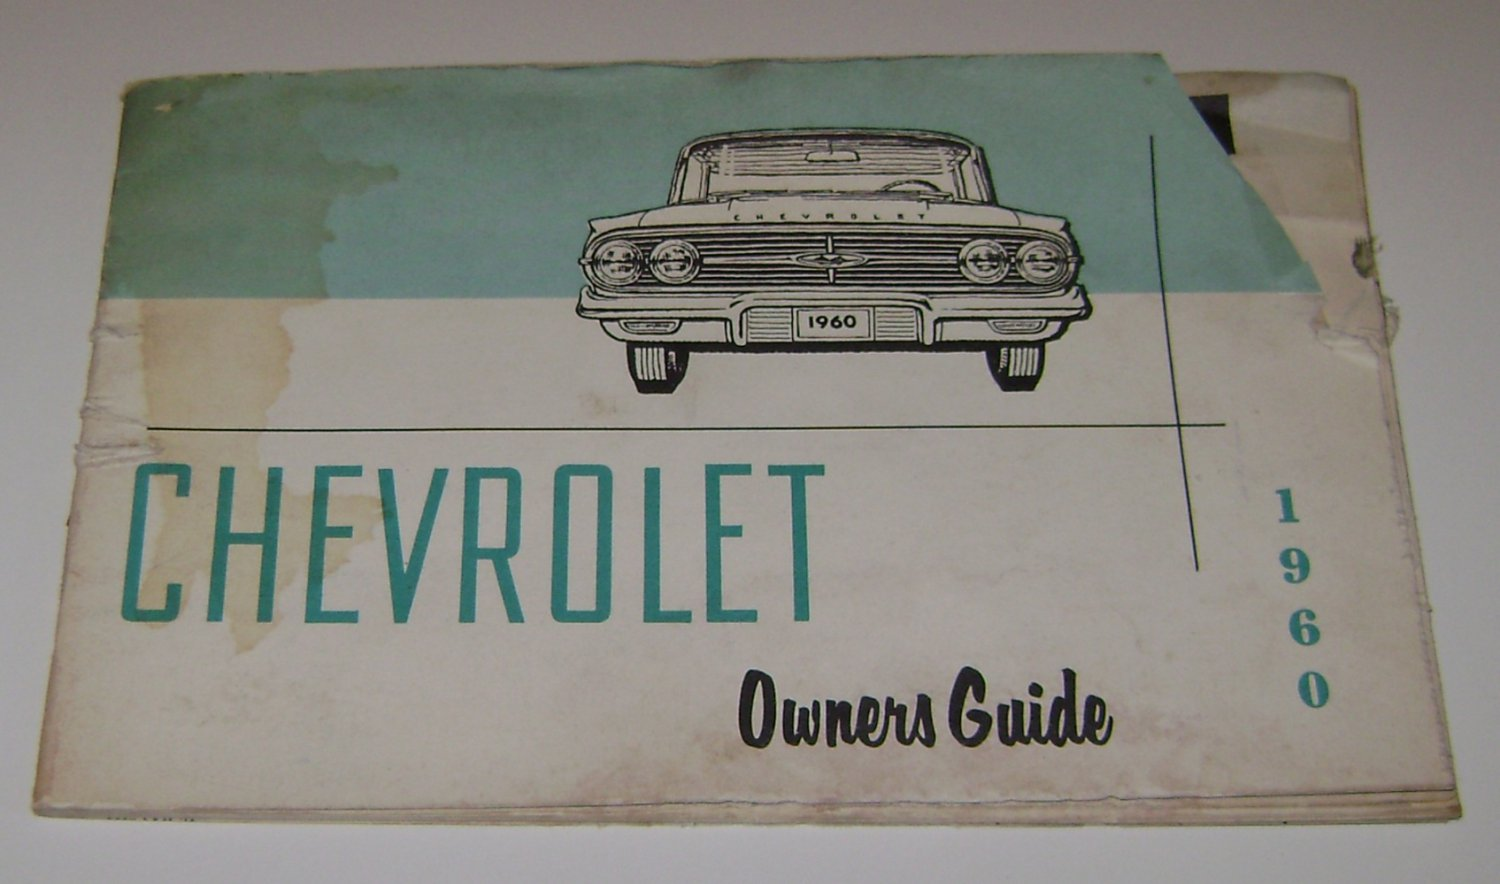 1960 Chevrolet owners guide